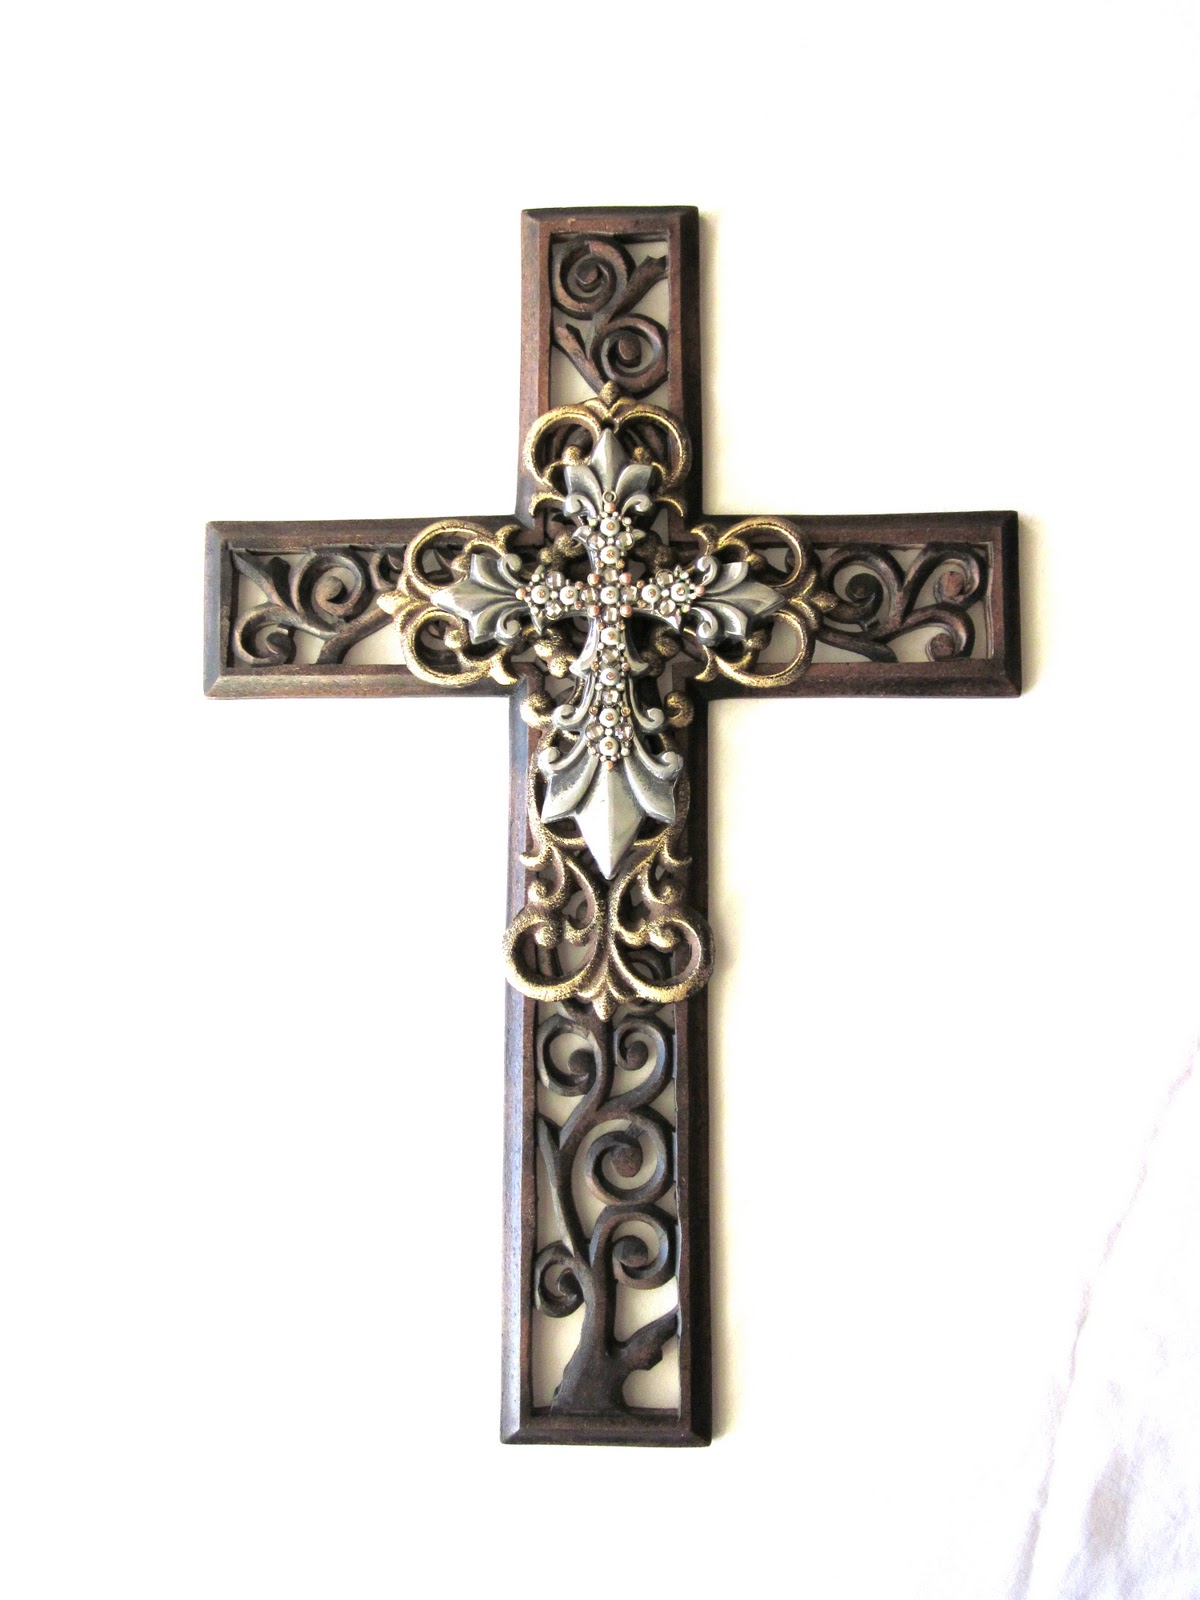 Cross wall decor 28 images cross wall decor wayfair cross wall decor wall decor ideas ckk Home decor wall crosses